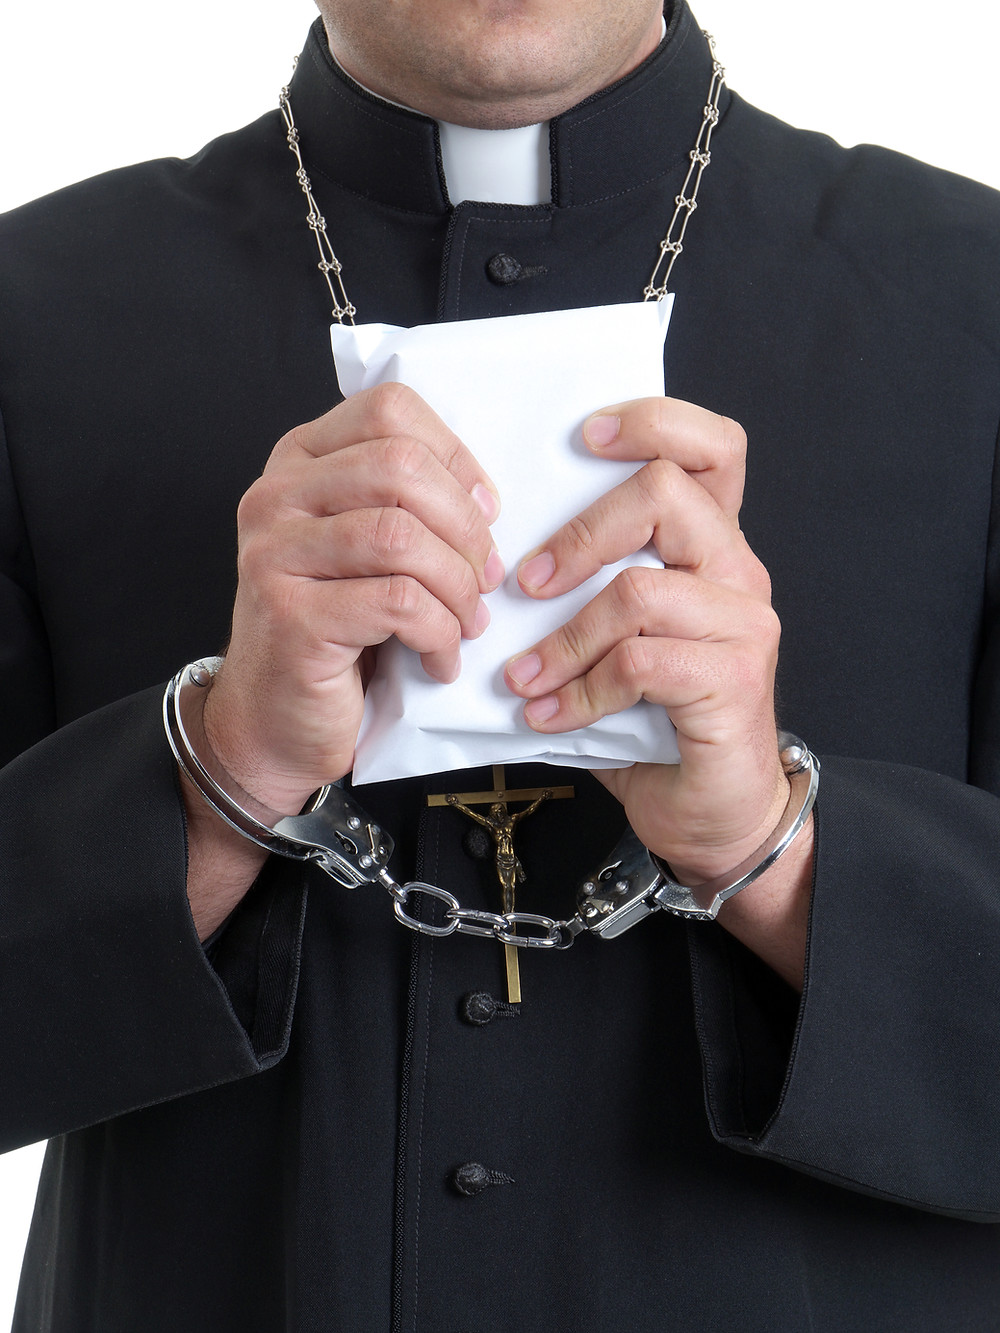 The priest in this story has not been arrested, but he should be...